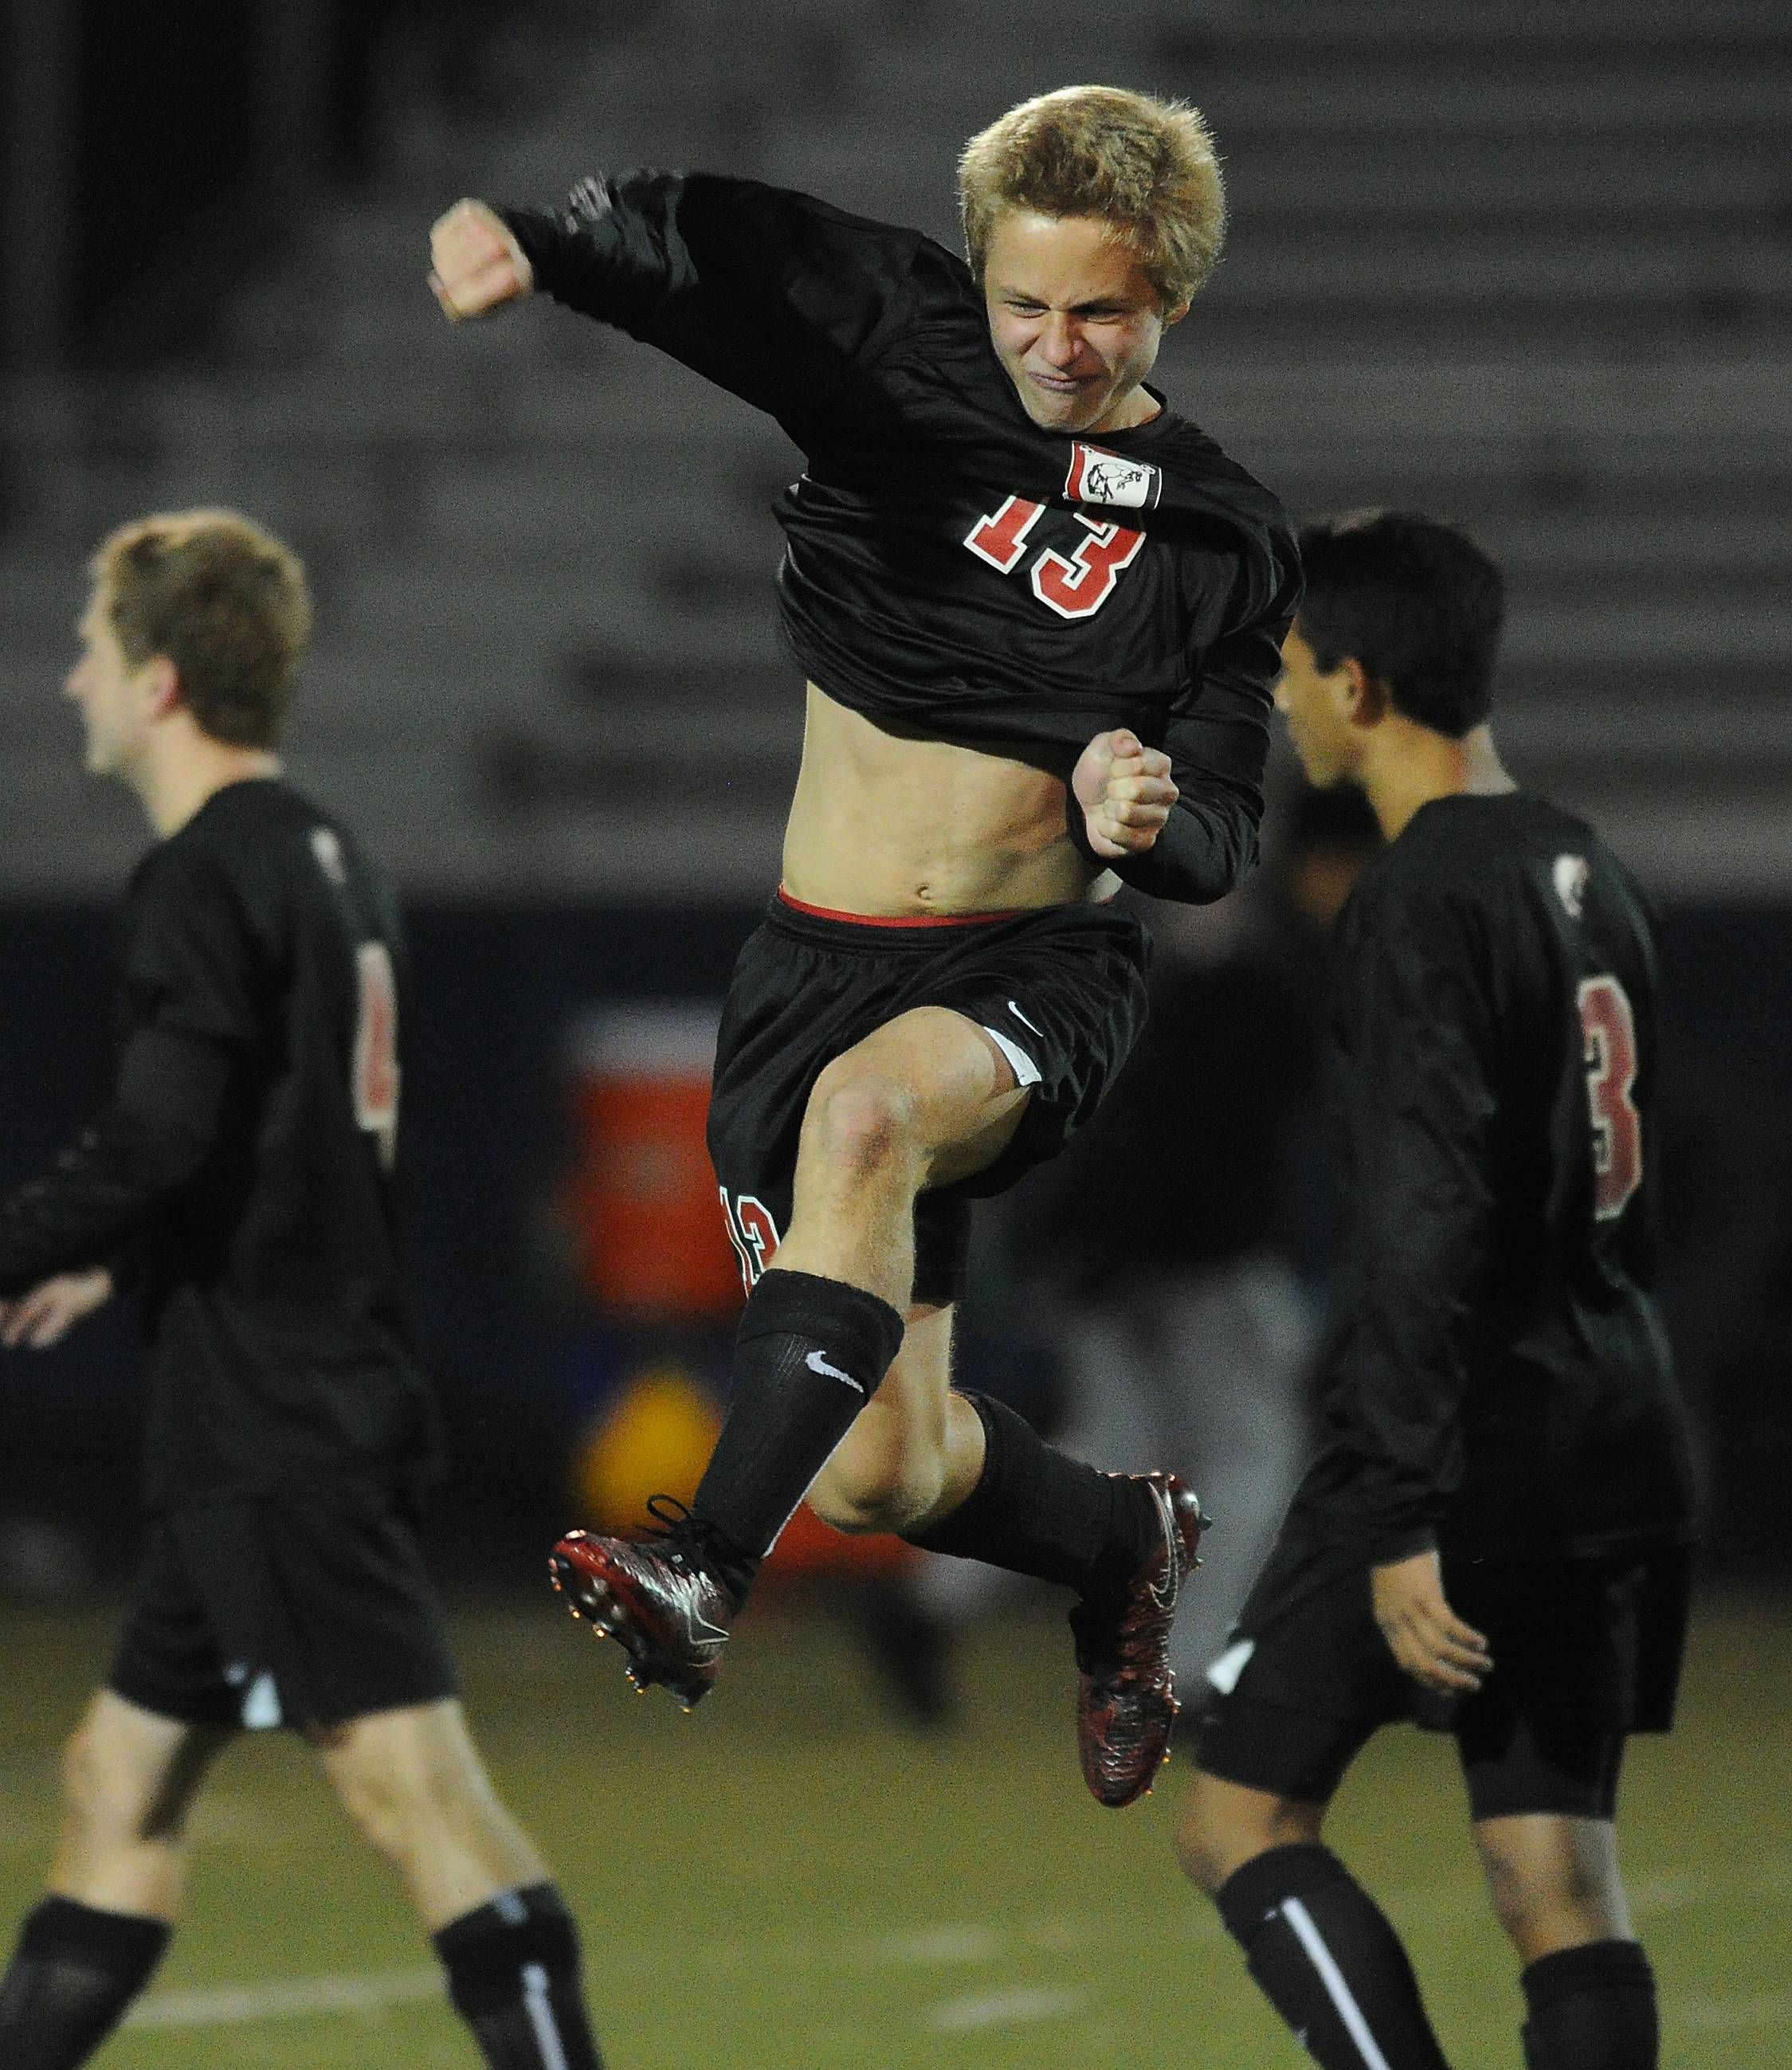 Barrington's Enrico Ruffolo, here celebrating a victory over Conant in the state semifinals last season, is among the key players back to take another shot at the MSL Cup this fall.